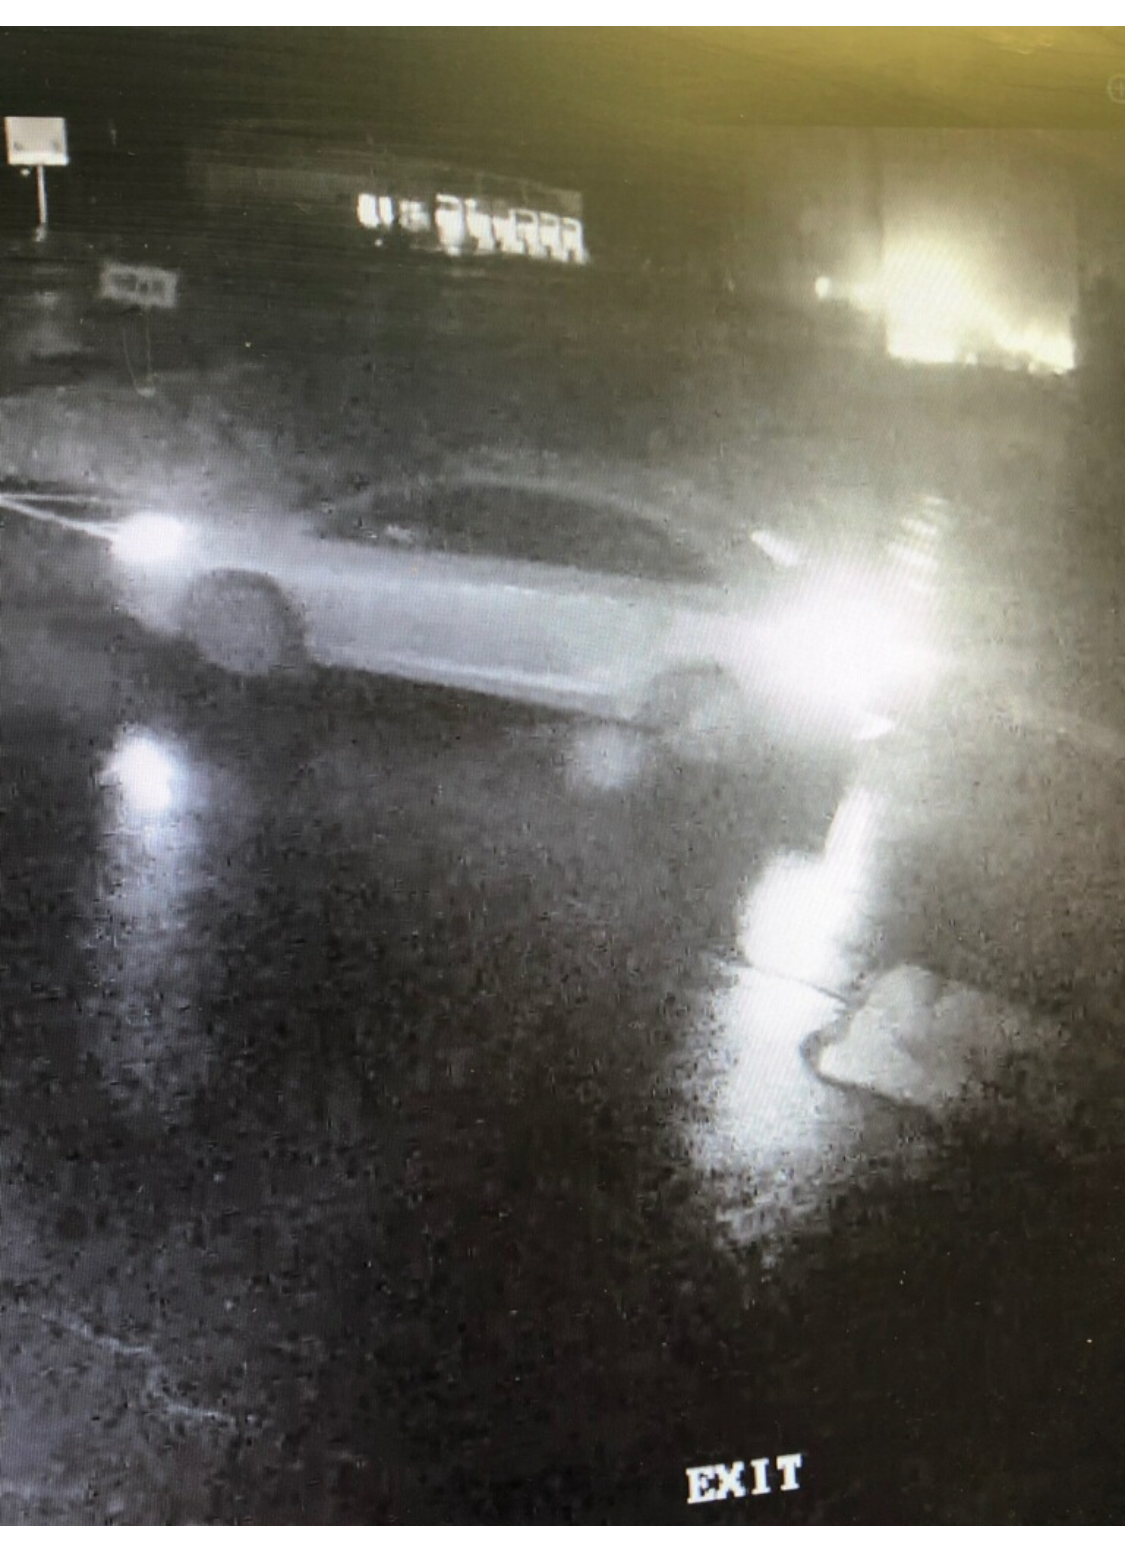 Image of a small light colored sedan used during the crime.